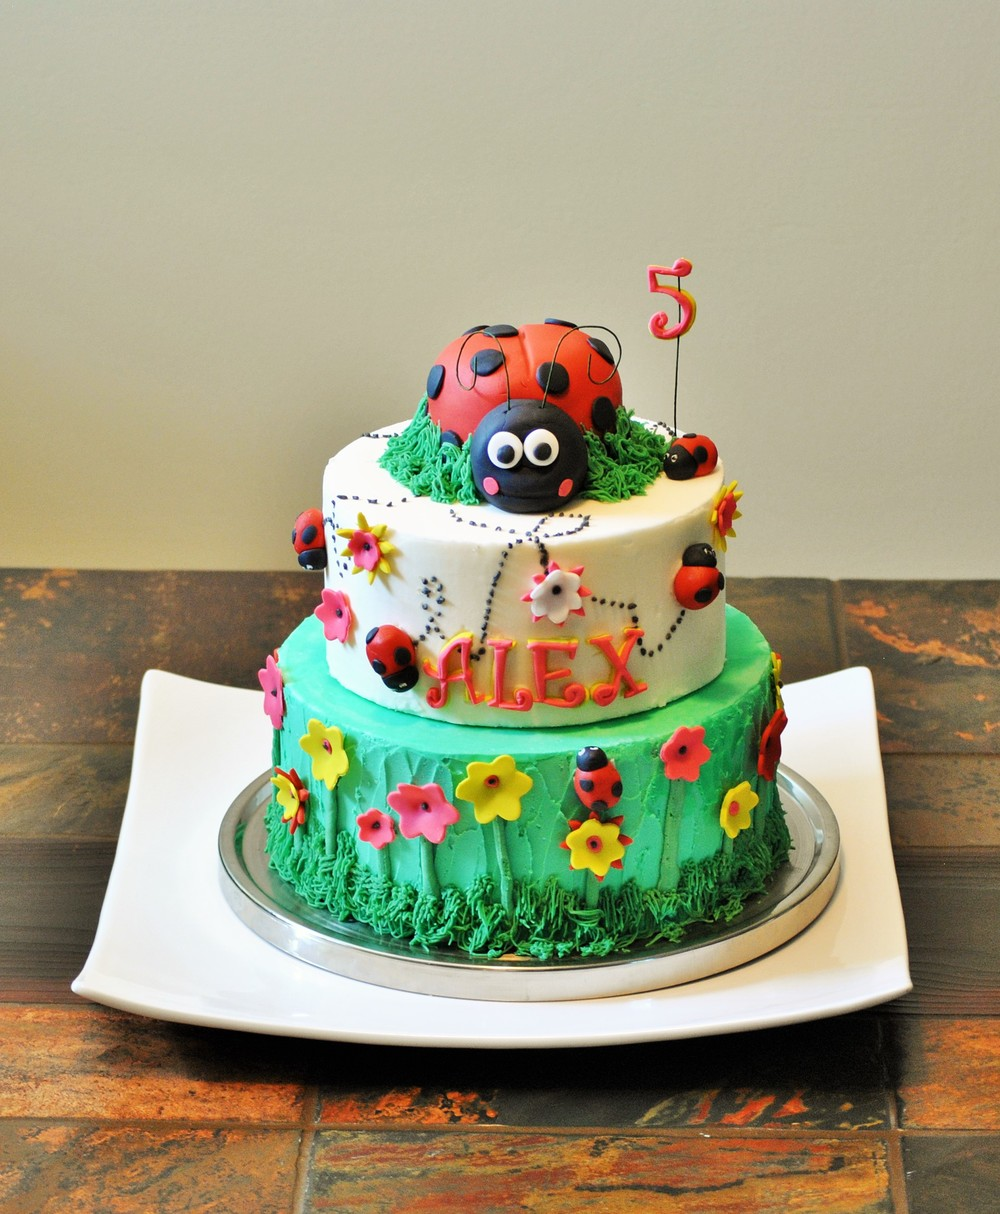 Ladybug Birthday Cake Richmond, VAVA